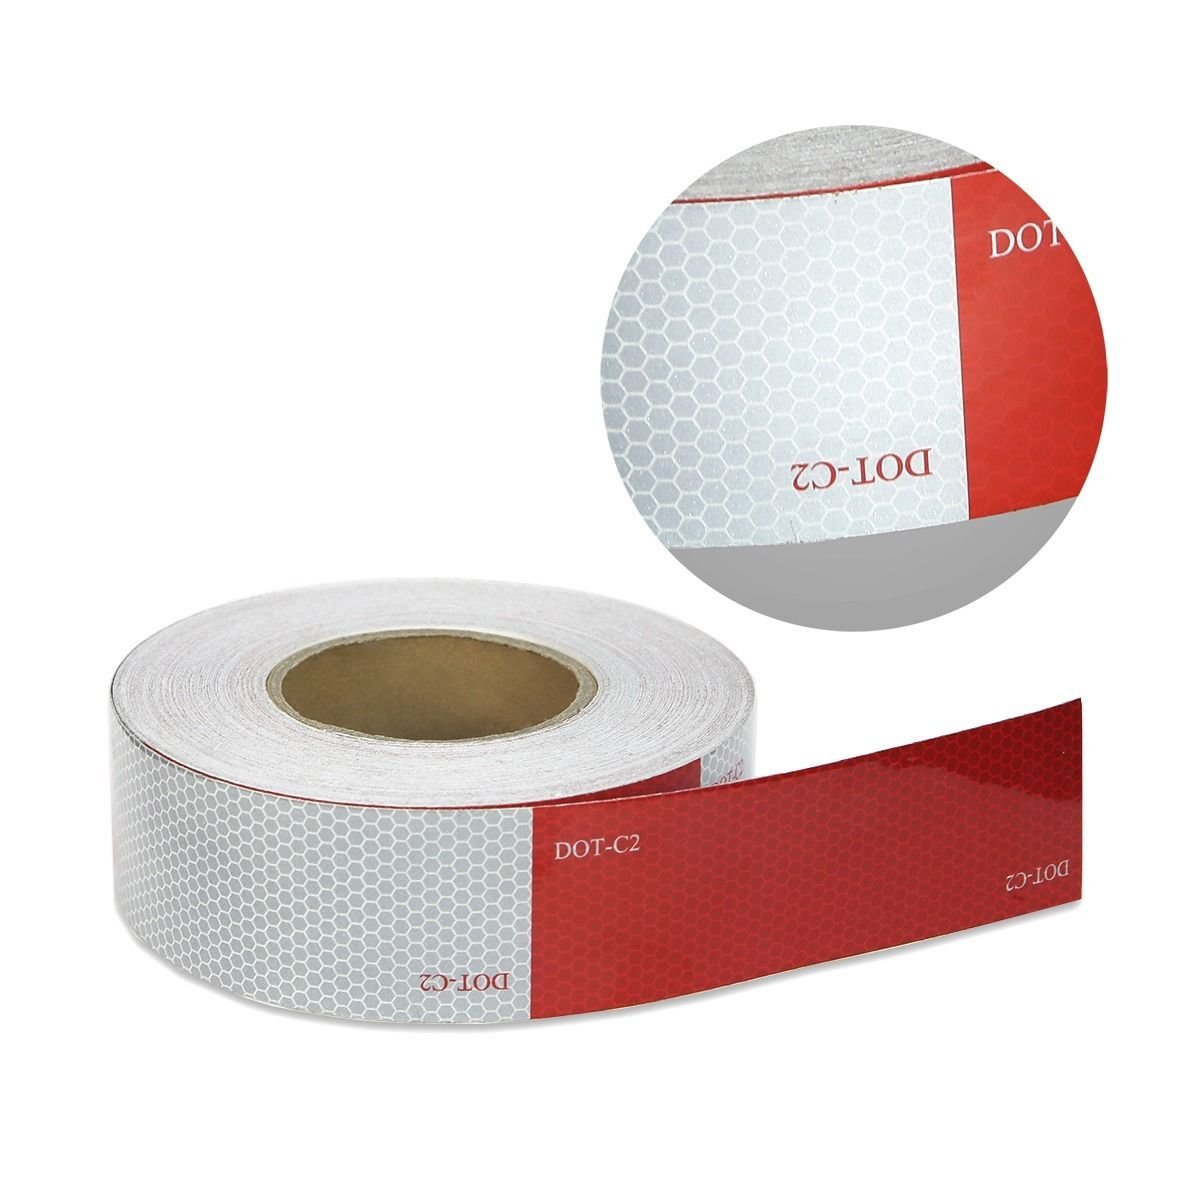 2x150 Dot C2 Reflective Conspicuity Tape Safety Trailer 6red 6 White